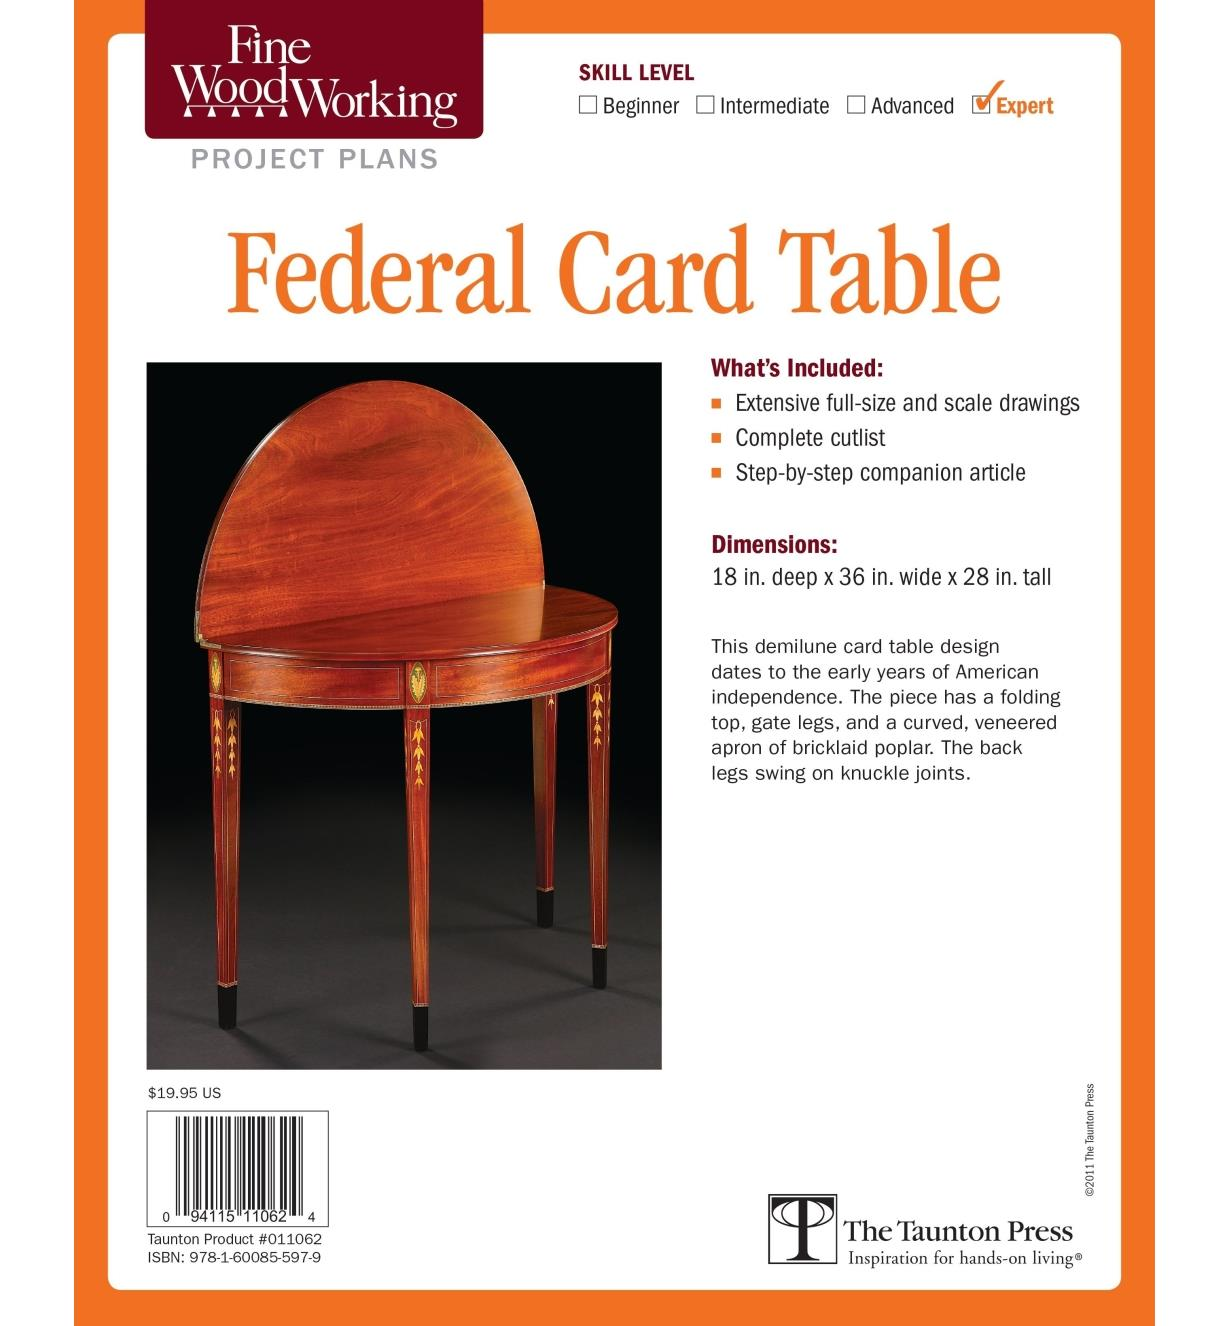 73L2516 - Federal Card Table Plan